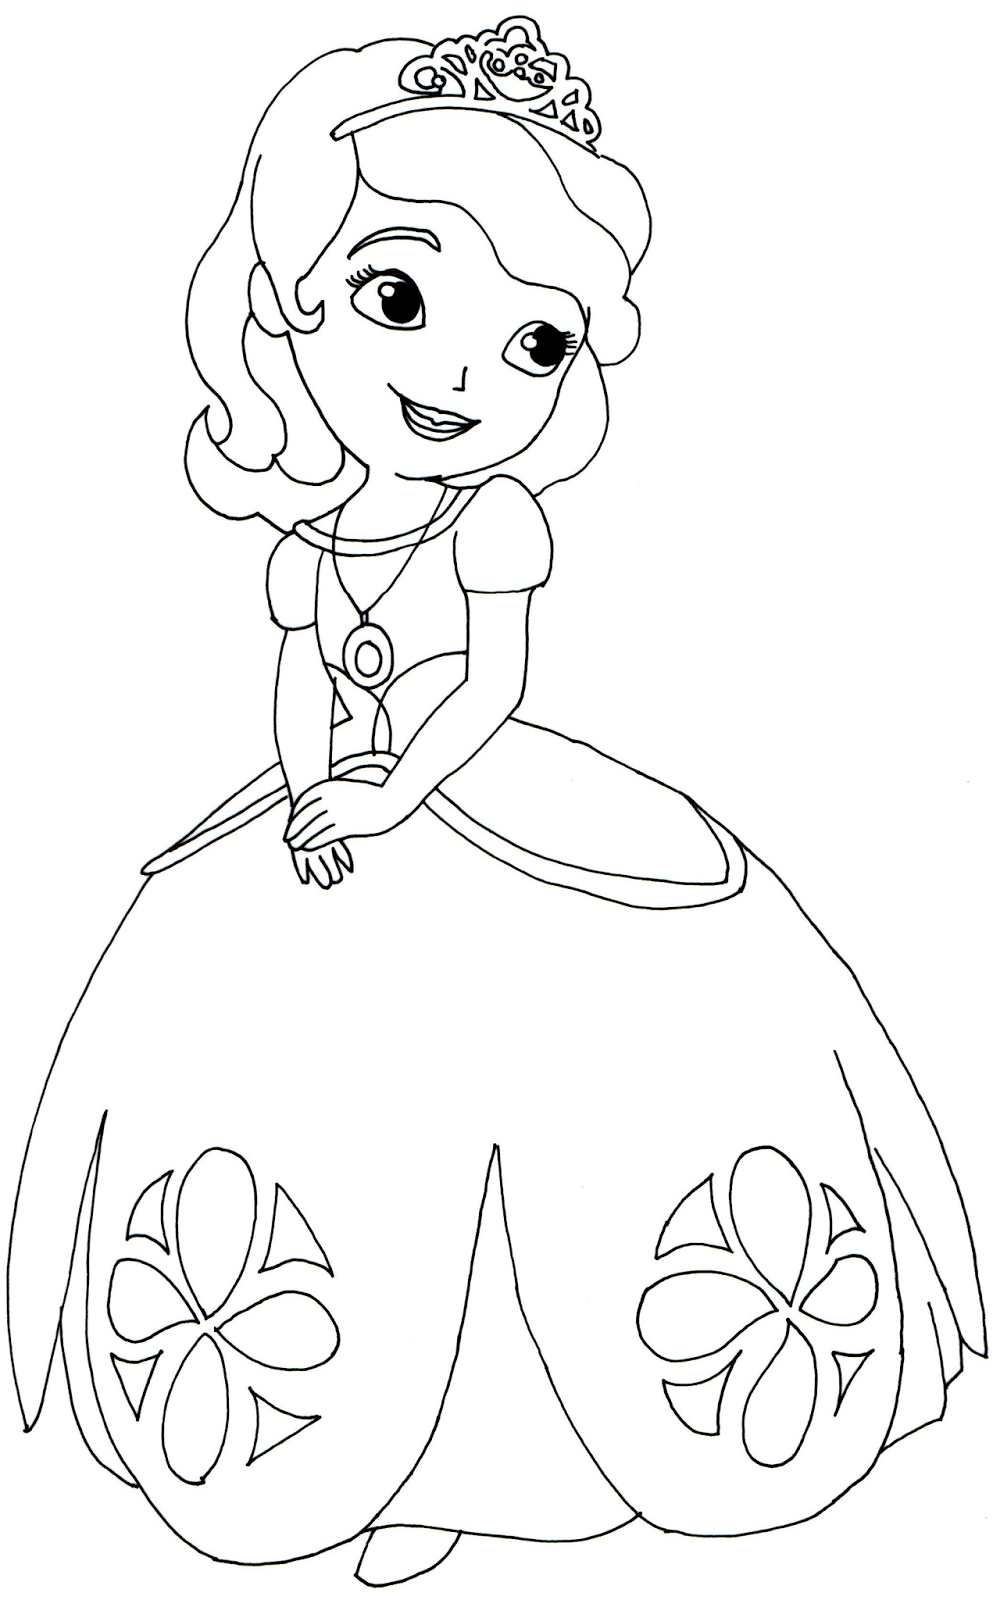 Sofia The First Coloring Page Basic Outfit Png 993 1600 Coloring Books Cartoon Coloring Pages Princess Coloring Pages